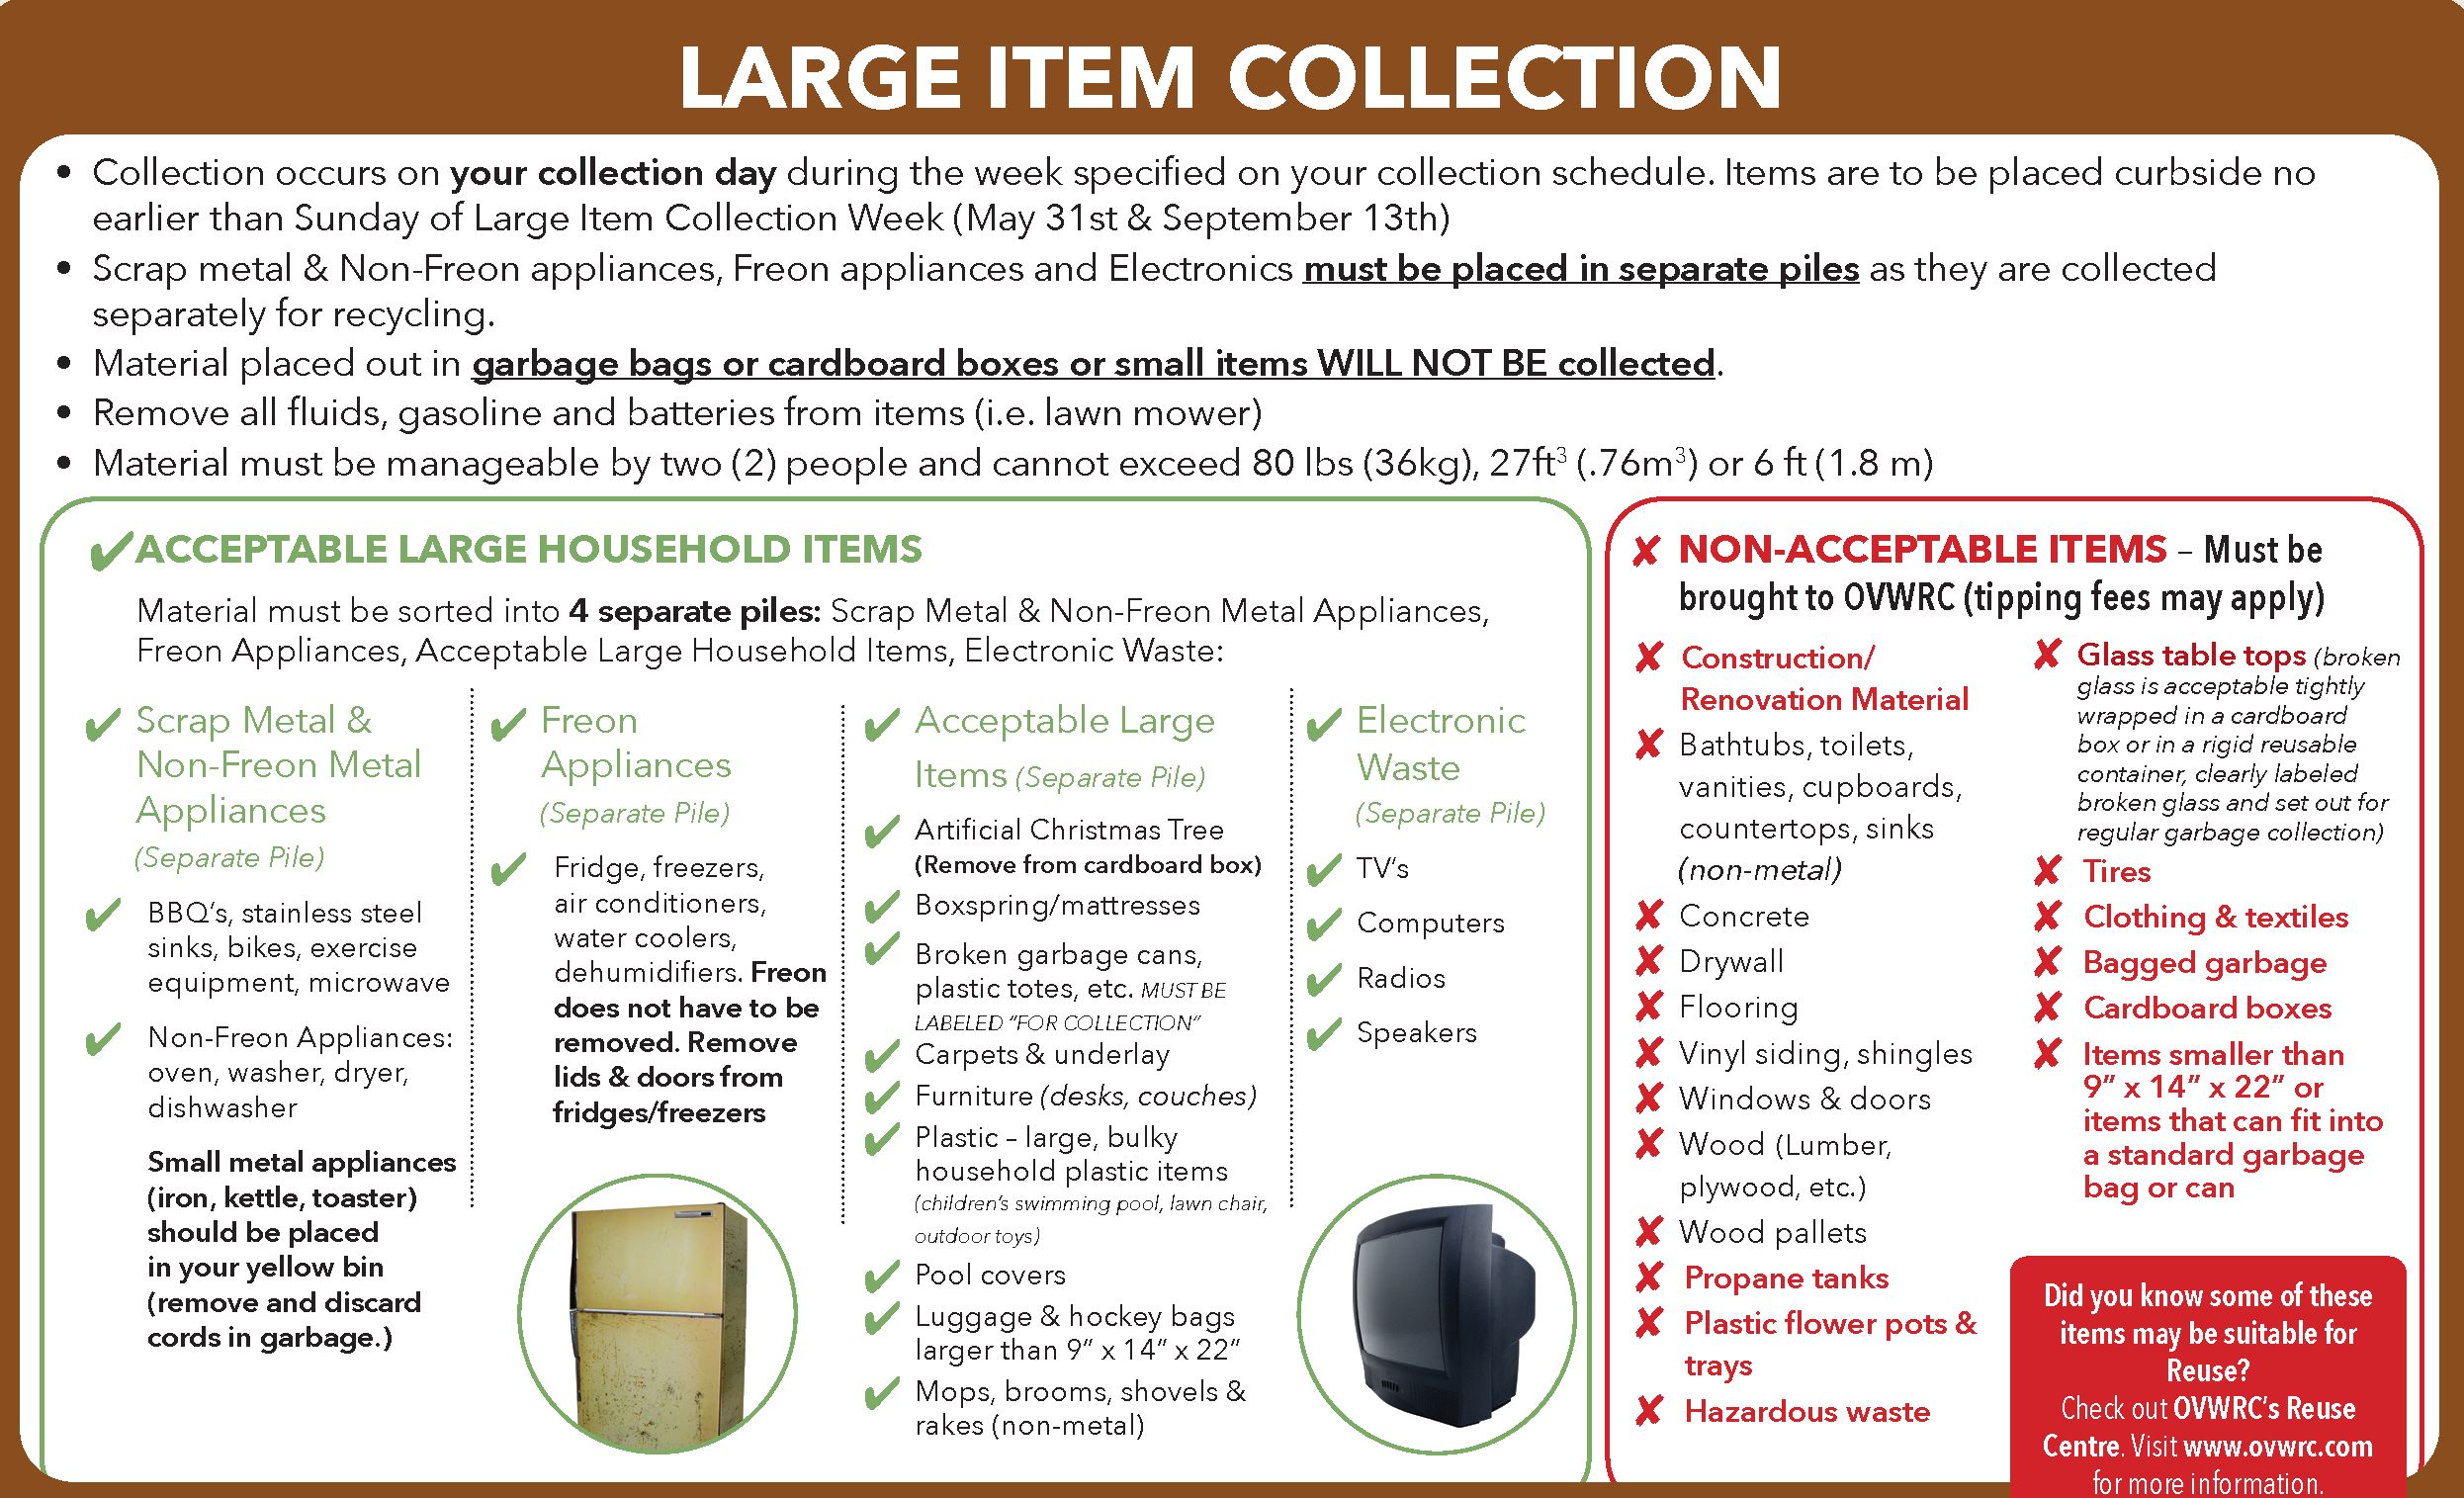 large item collection, acceptable large household items